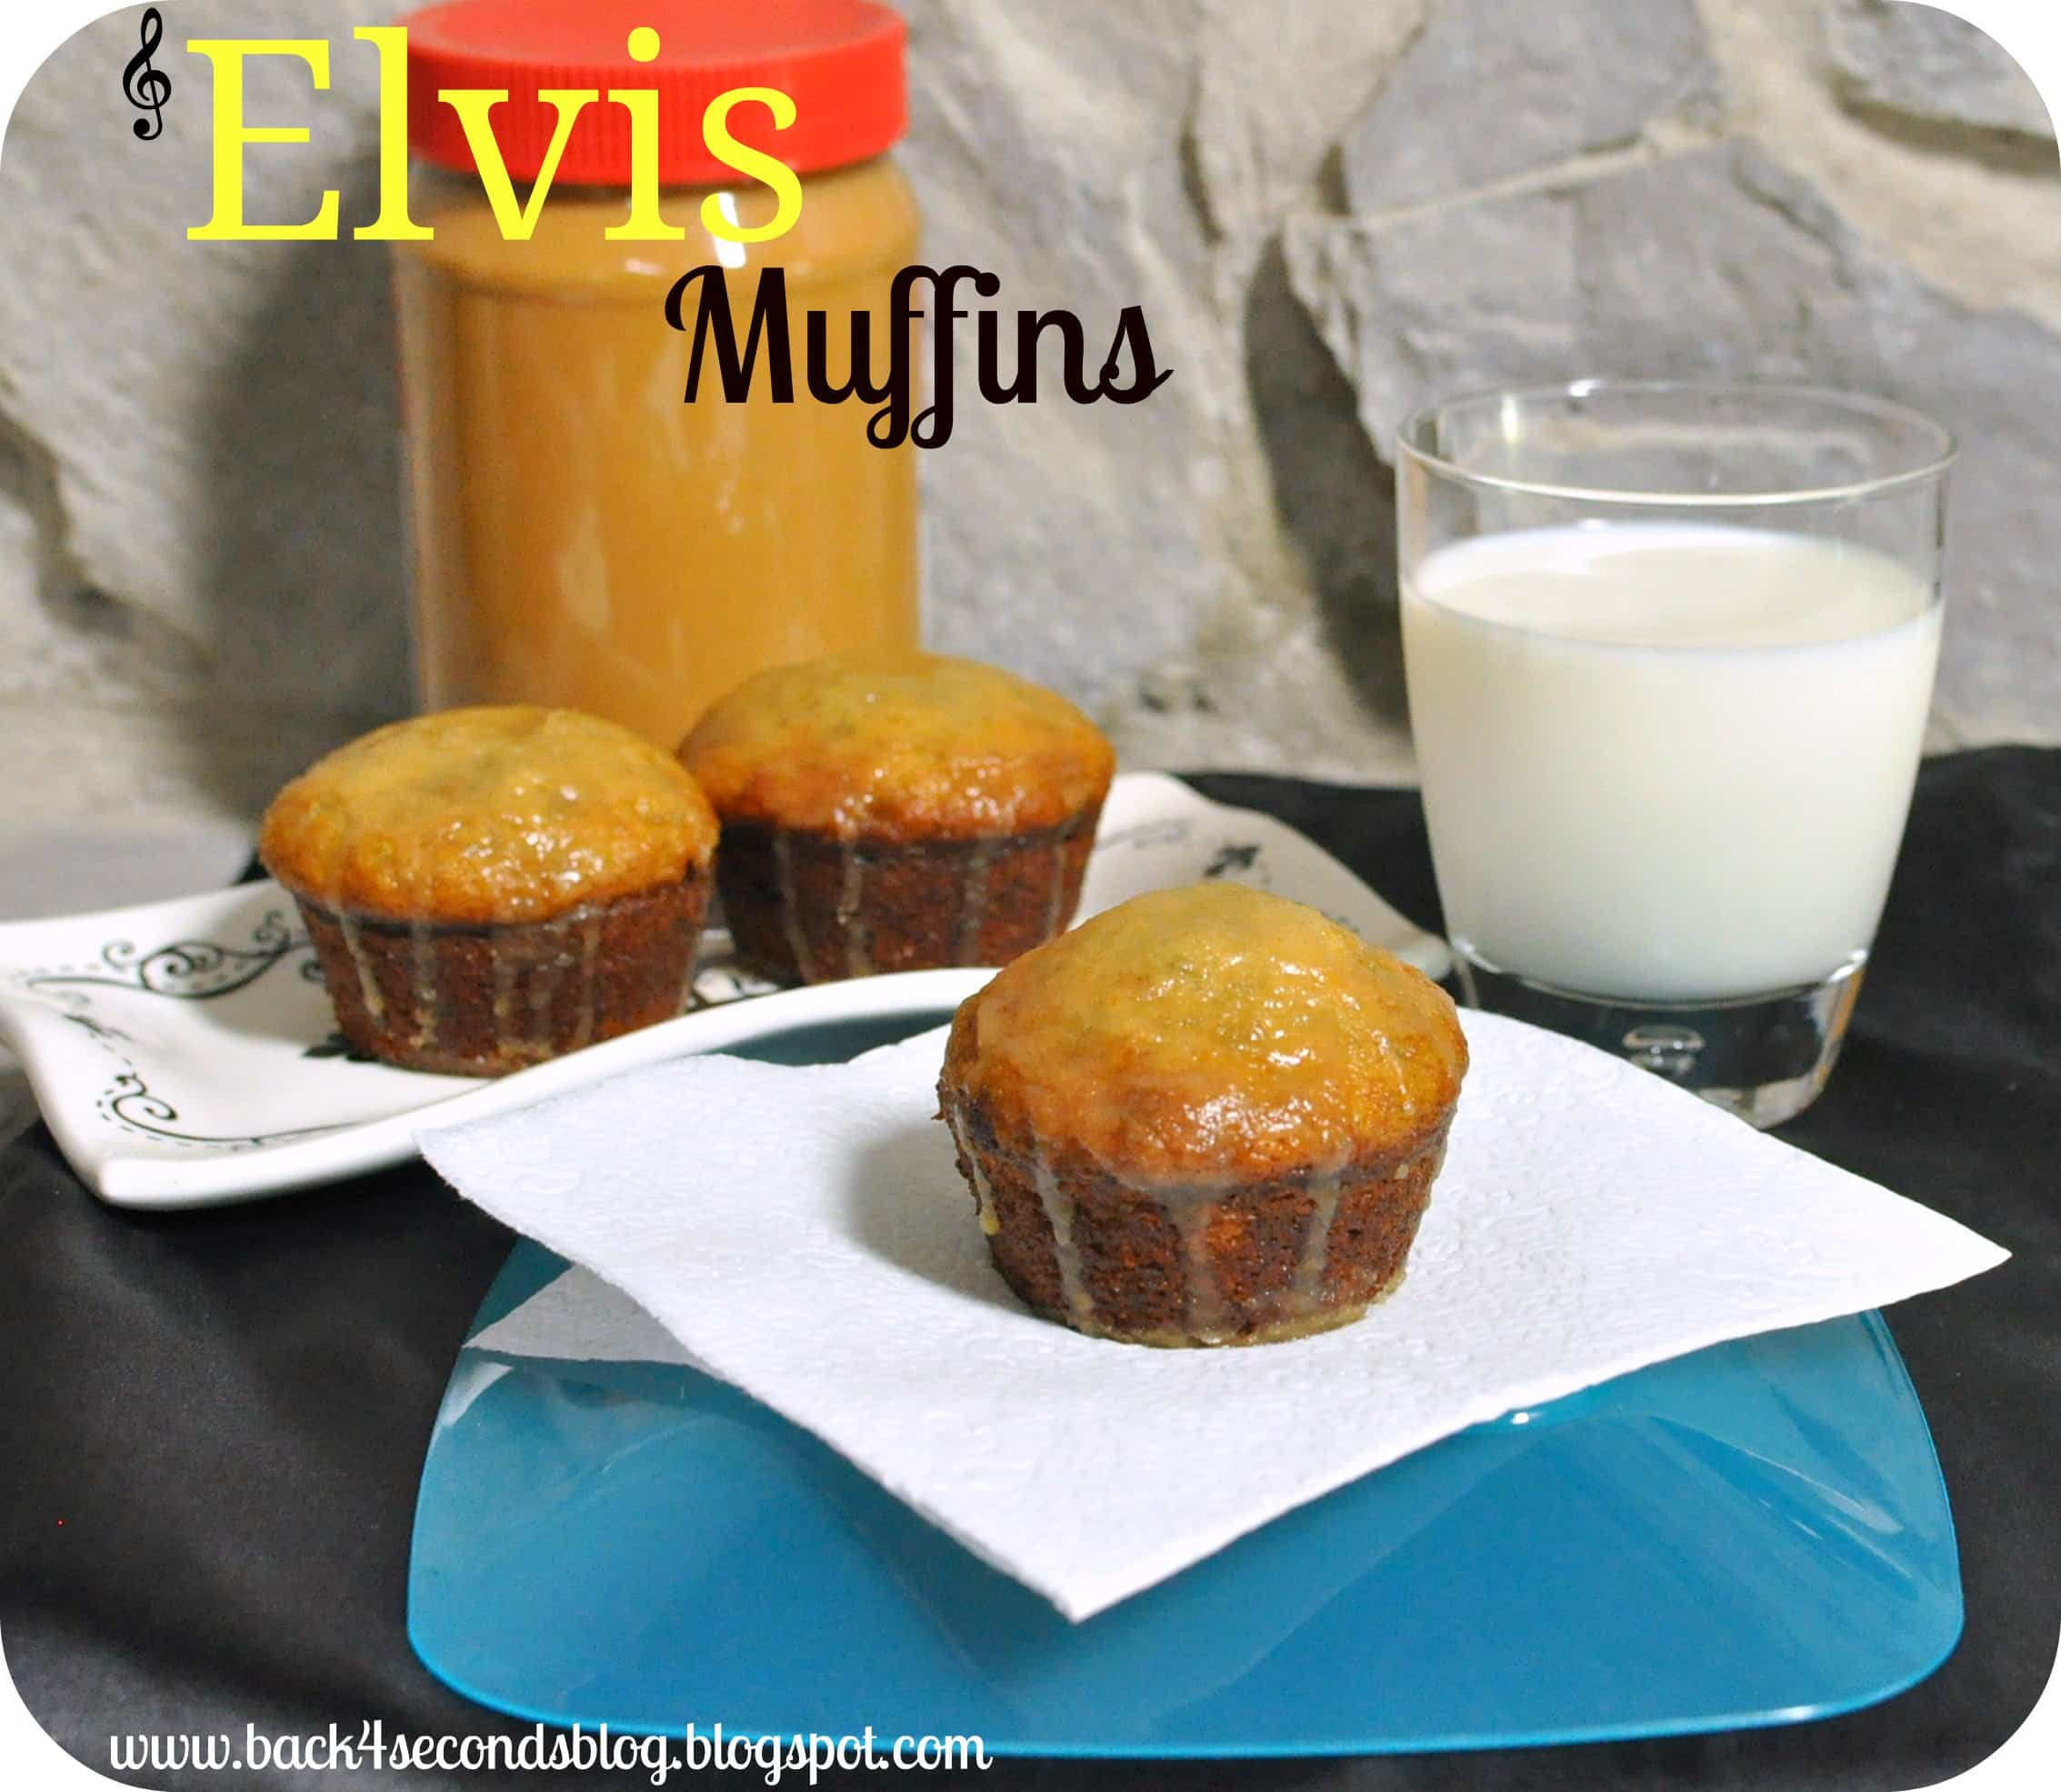 Elvis Muffins backforsecondsblog.com